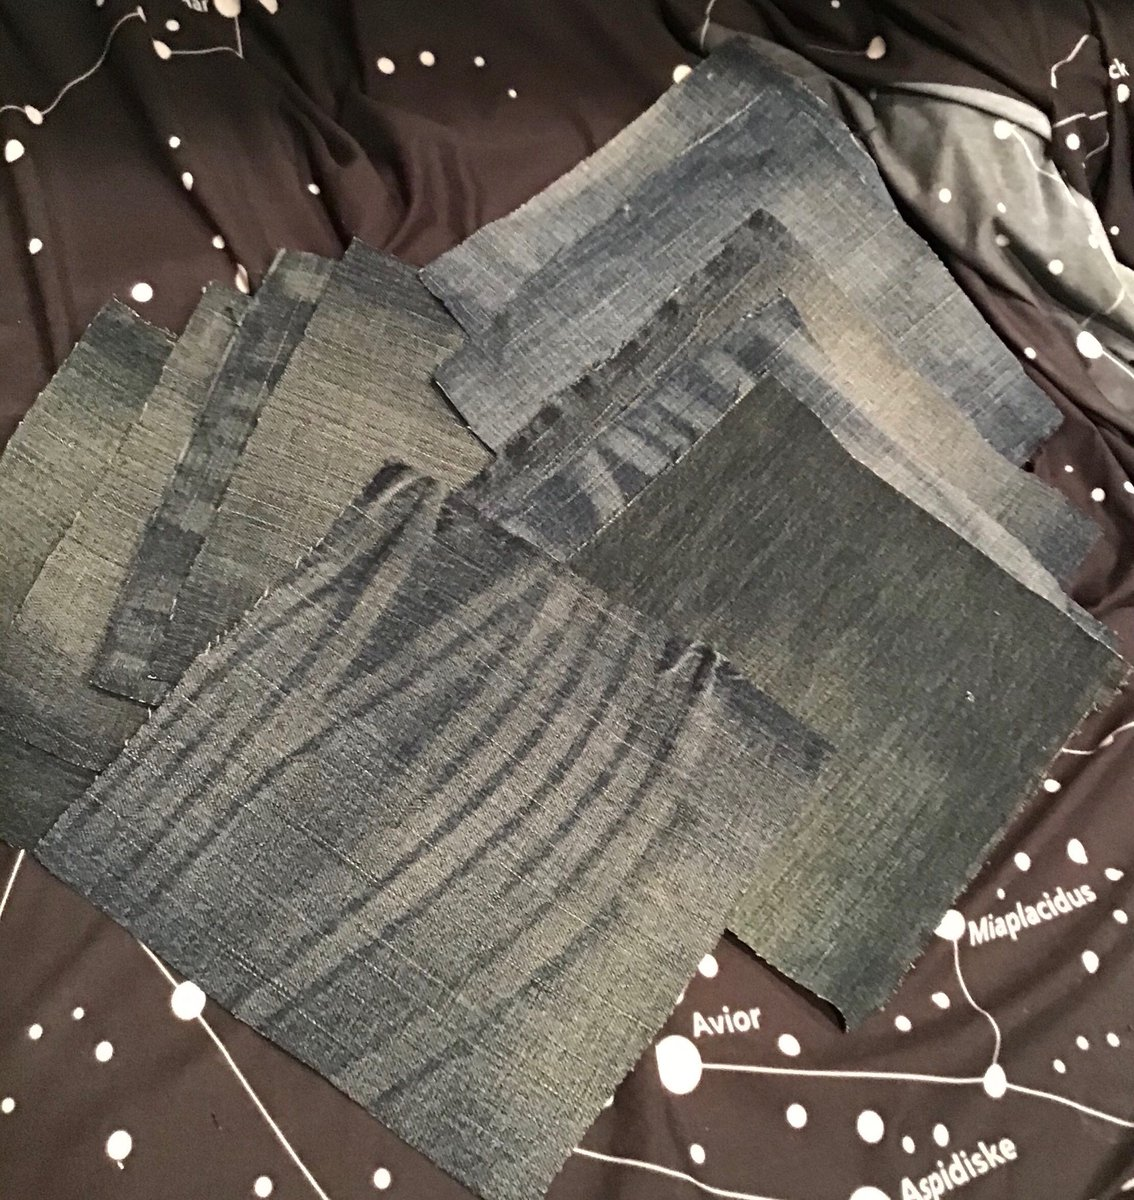 """New in my #etsy shop: Reclaimed Denim Squares—7x7""""—10 pieces #quilting #upcycled #denim #patches #salvaged #jeans https://t.co/sPA6gRBJYU https://t.co/A8gk9nSEdo"""